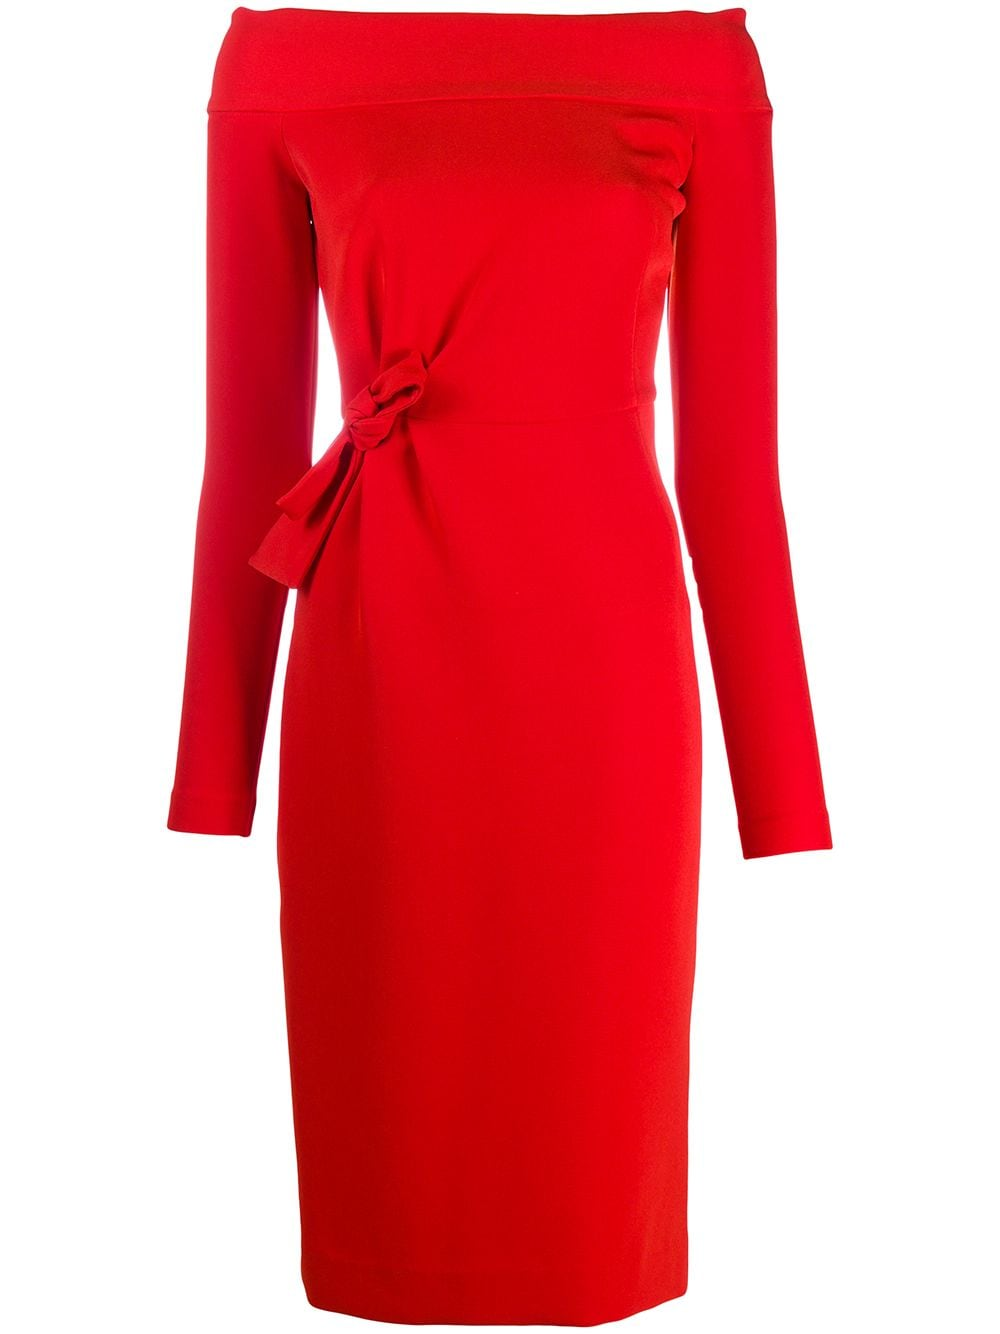 Red off-shoulder fitted dress featuring side tie fastening P.A.R.O.S.H. |  | D723437-PROTONE019